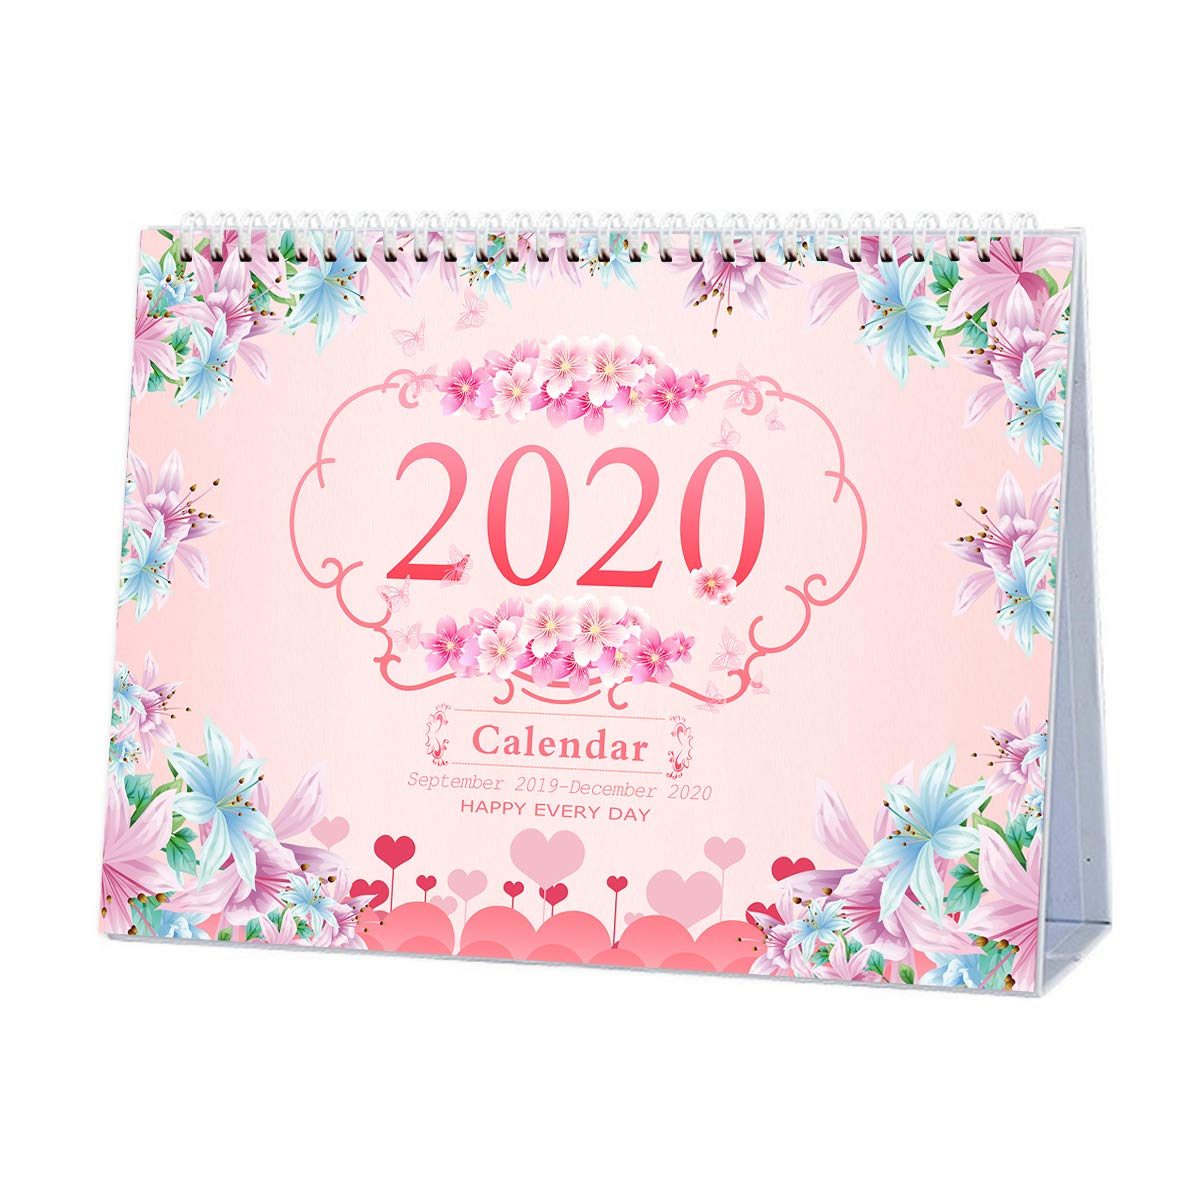 Rose 9.25x6.69 inches Runs from September 2019 Through December 2020 Desk Calendar 2019-2020: Monthly Desk Calendar